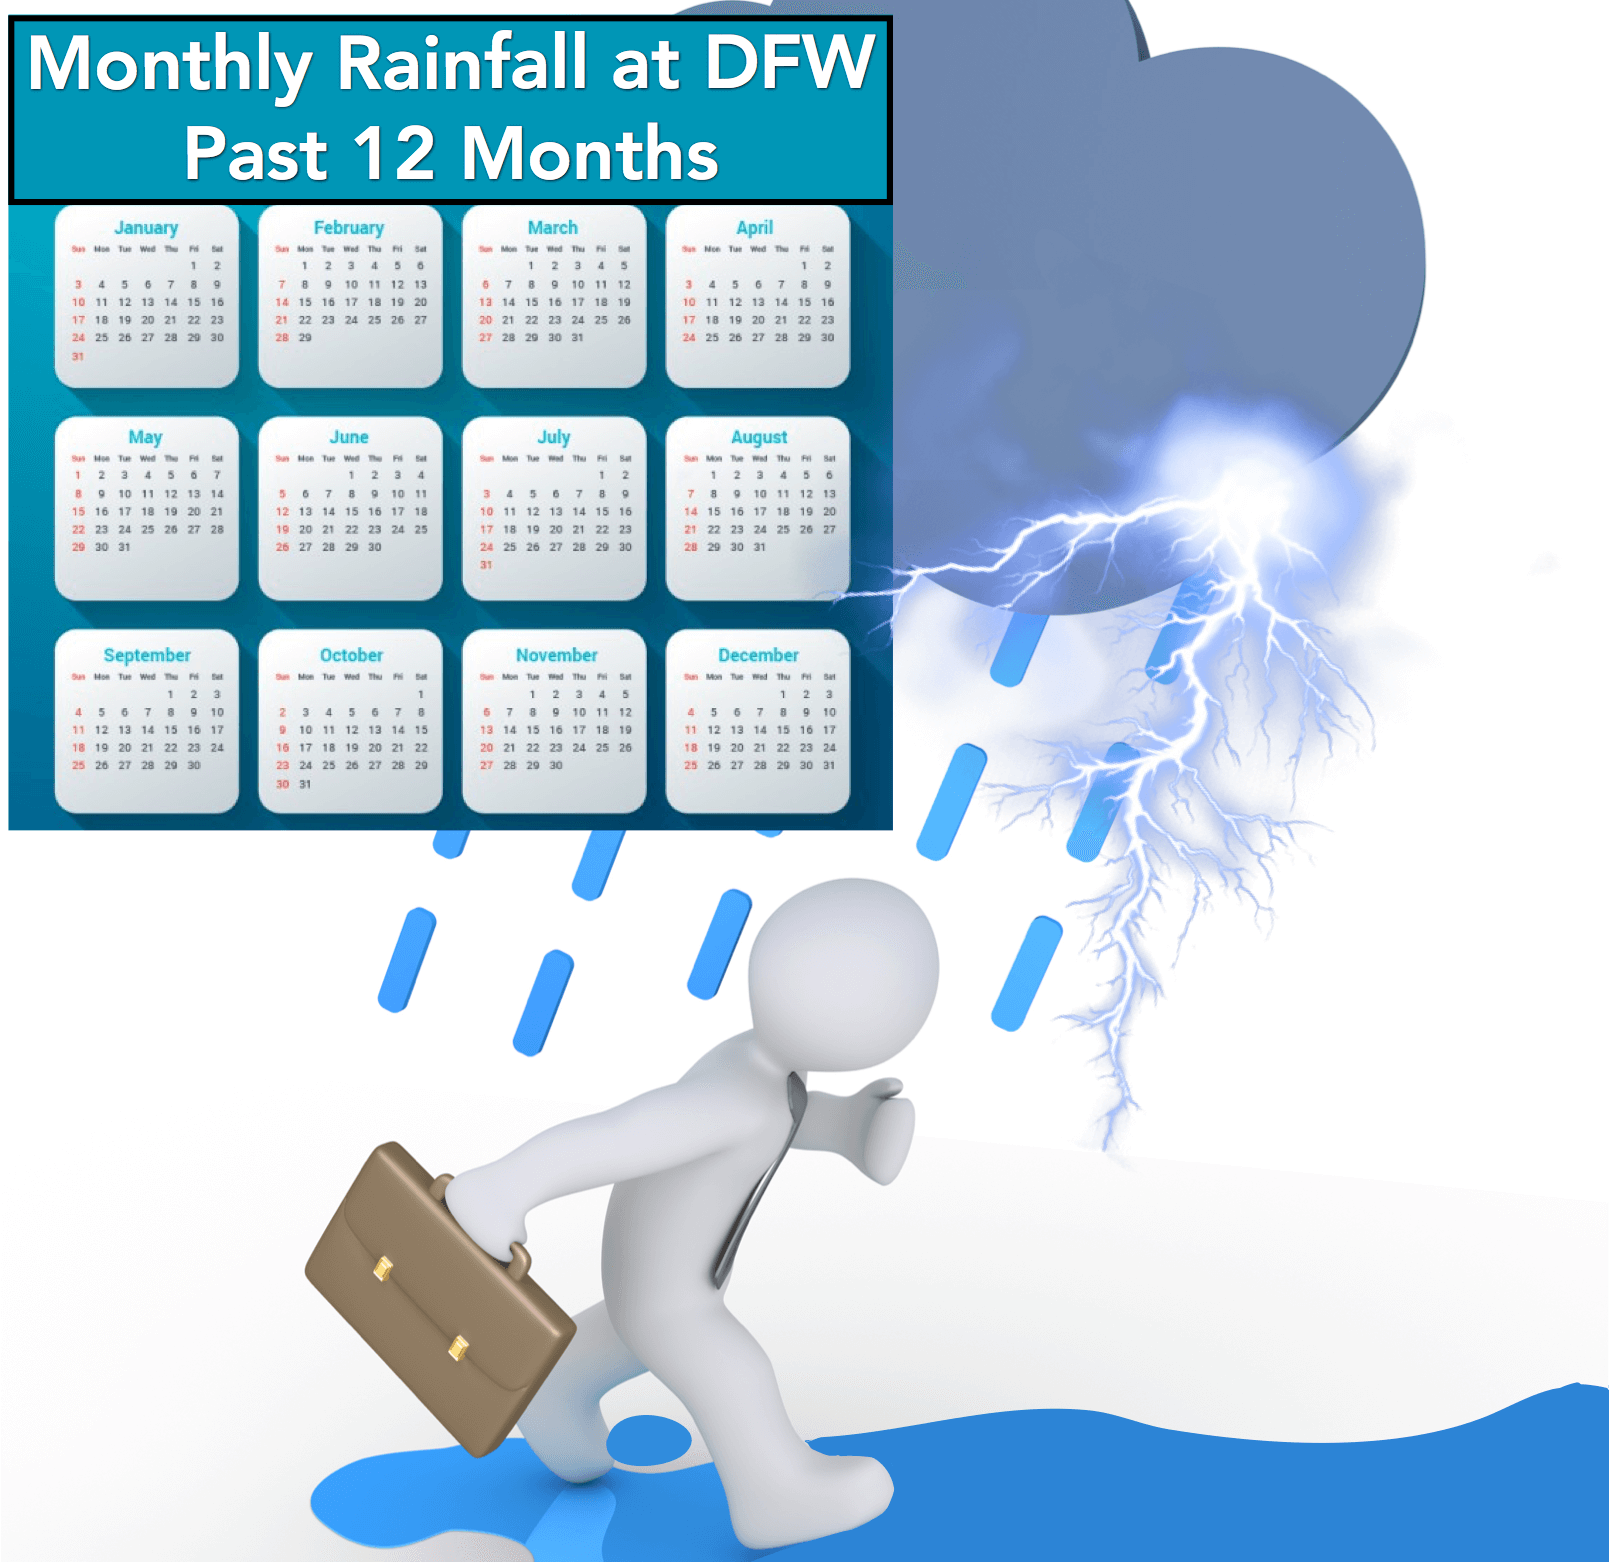 Rainfall data at DFW for the past 12 months, each month